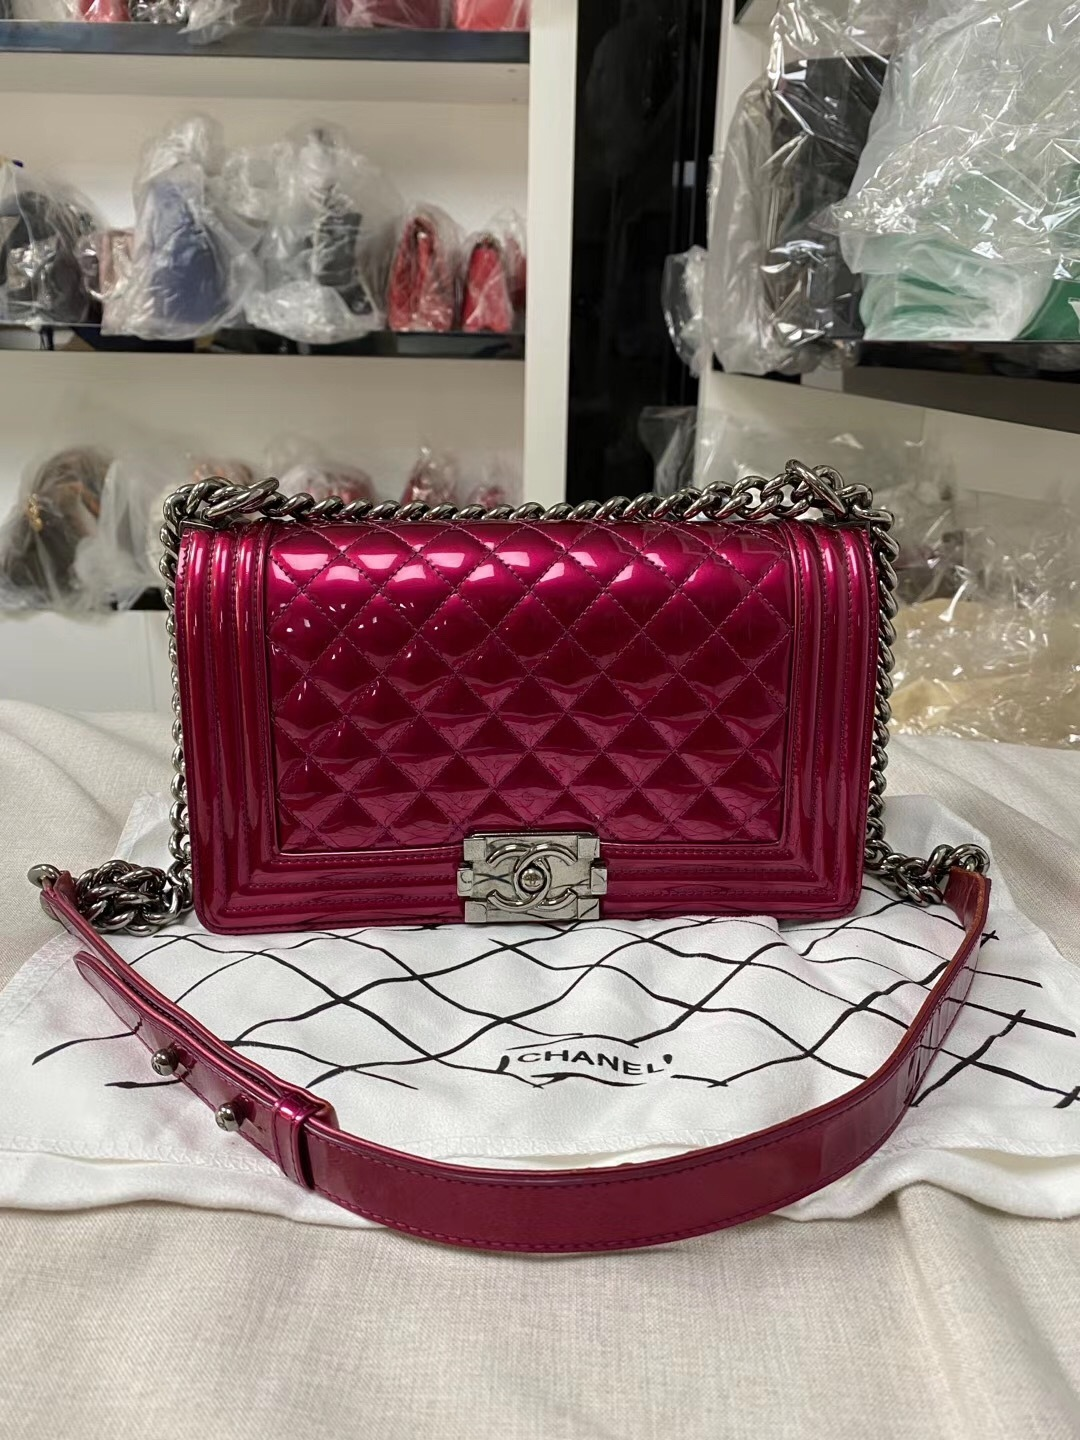 SALE*** Authentic Chanel Boy Metallic Fuchsia Pink Quilted Patent Leather Medium